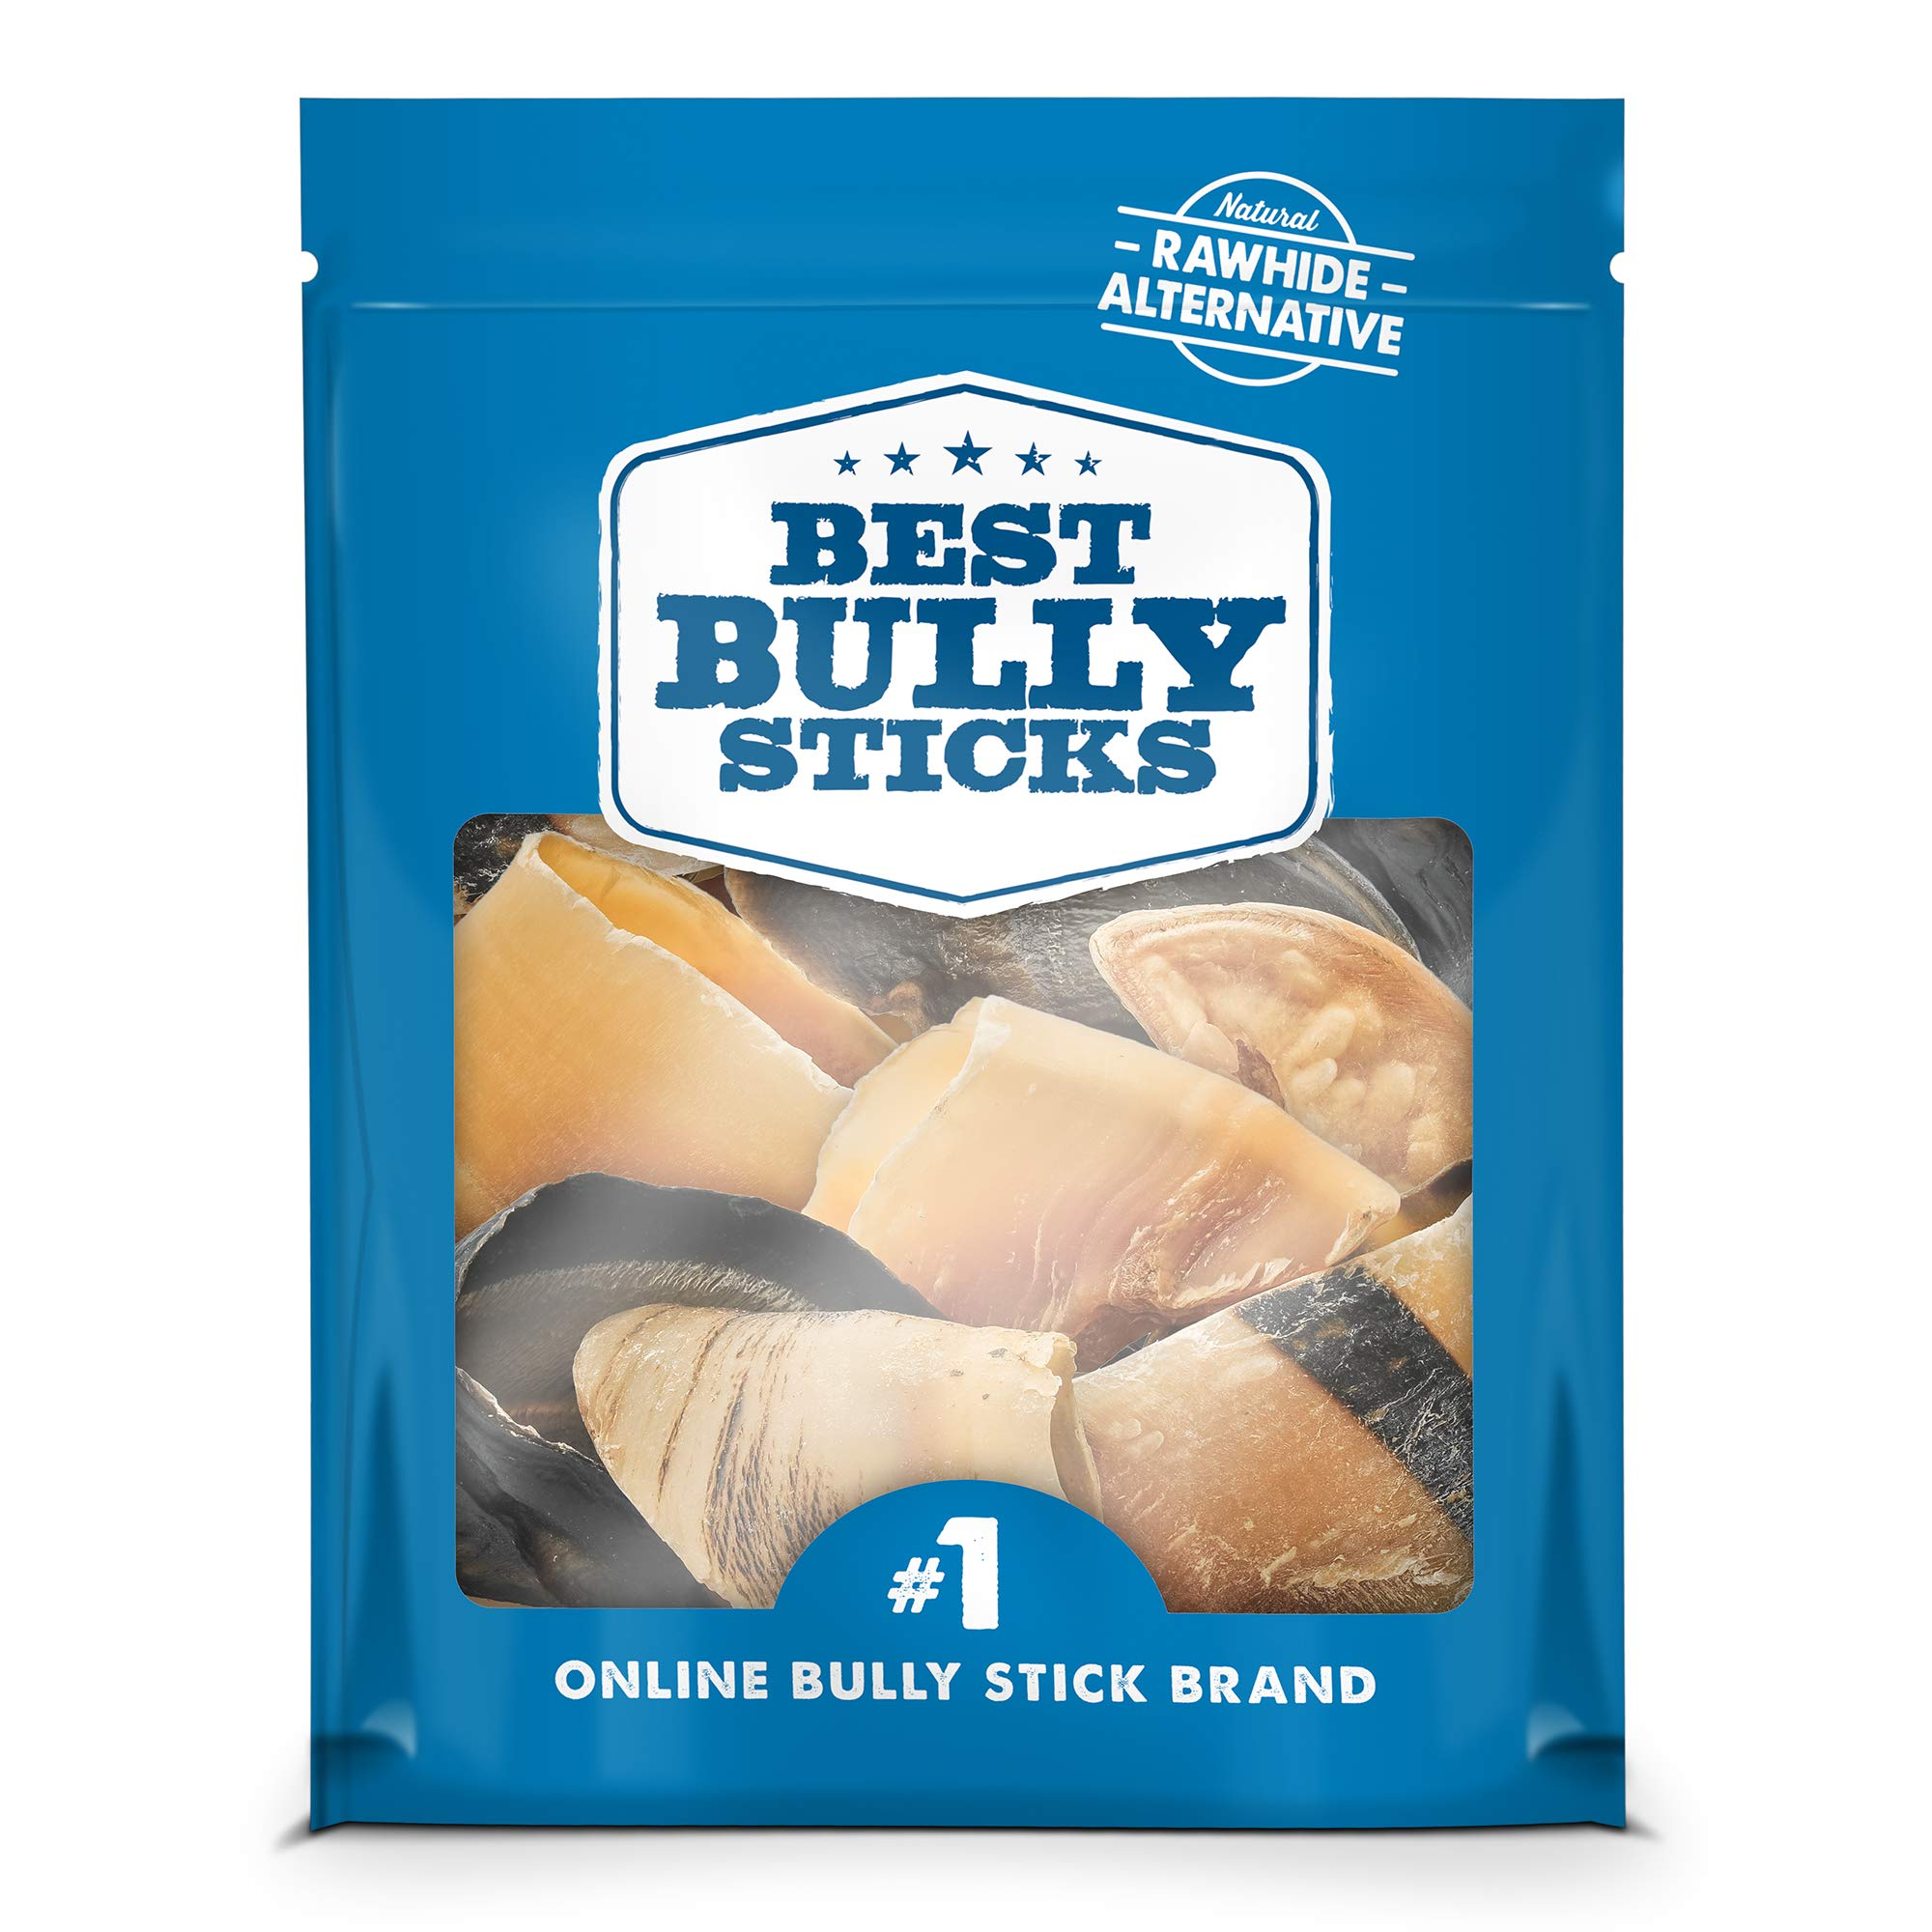 Best Bully Sticks 100% Natural Cow Hooves Dog Chews (25 Count Value Pack) - Free-Range & Grass-Fed Cattle - Long-Lasting Natural Alternative to Rawhide by Best Bully Sticks